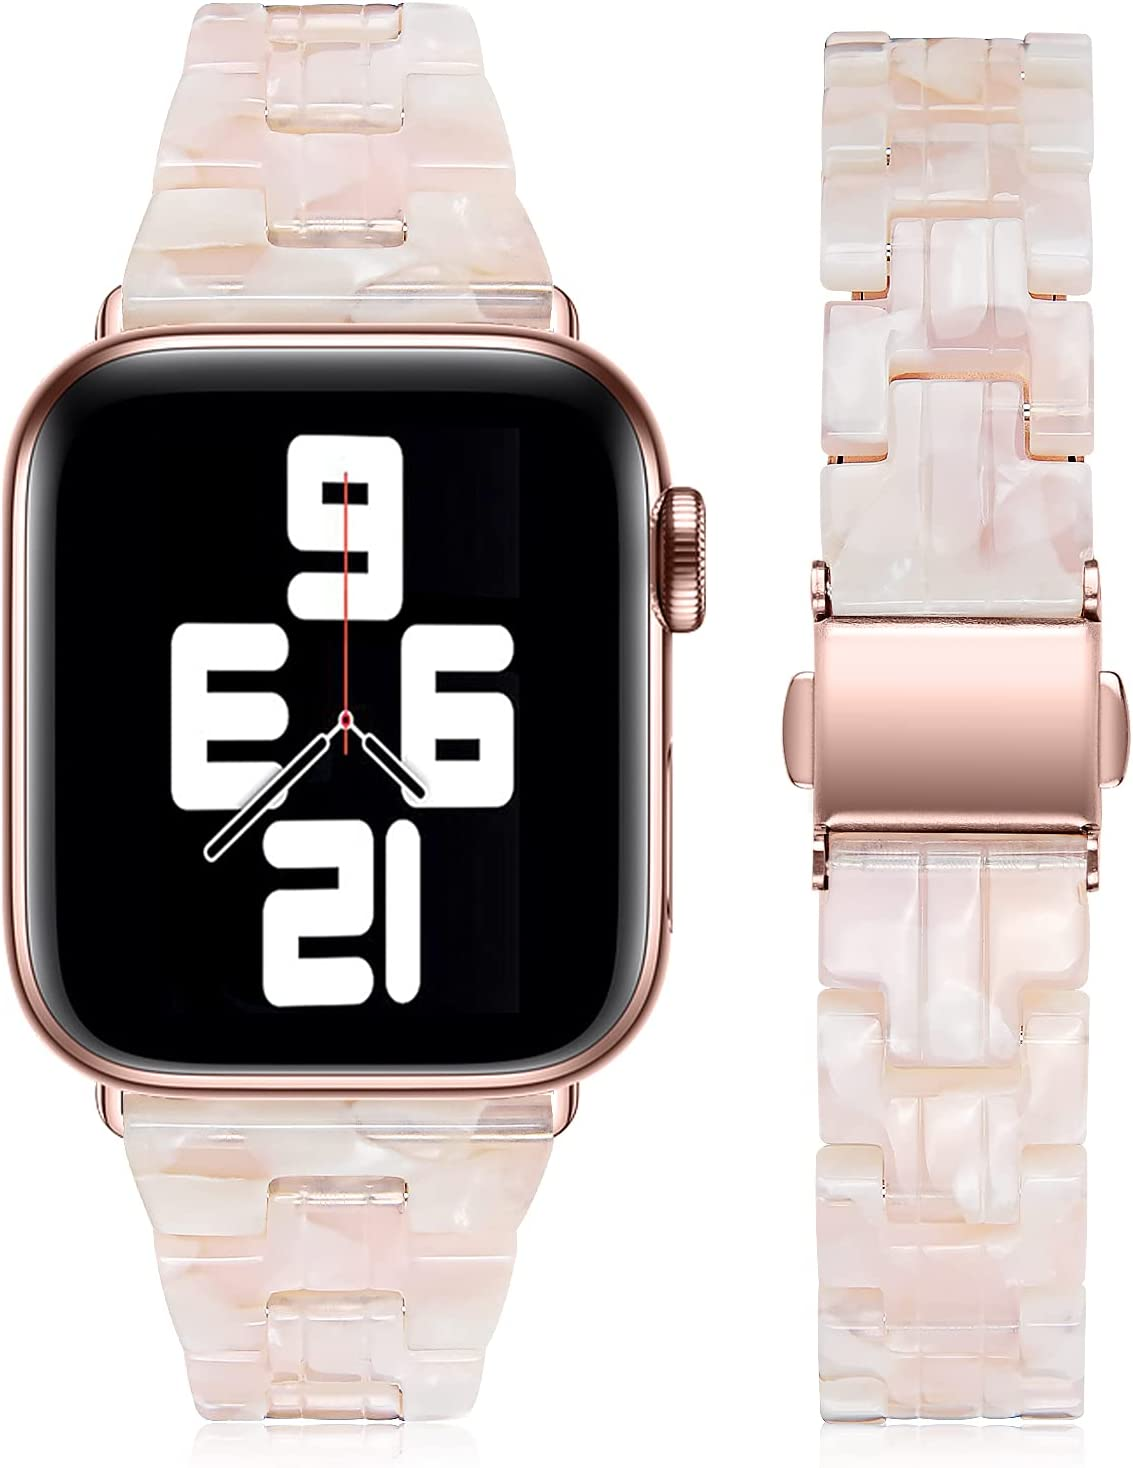 Joyozy Compatible with Apple Watch Bands 44mm 42mm Fashion Slim Resin Band For Apple Watch series 6 5 4 3 2 1 SE (Flower Pink, 42MM 44MM)